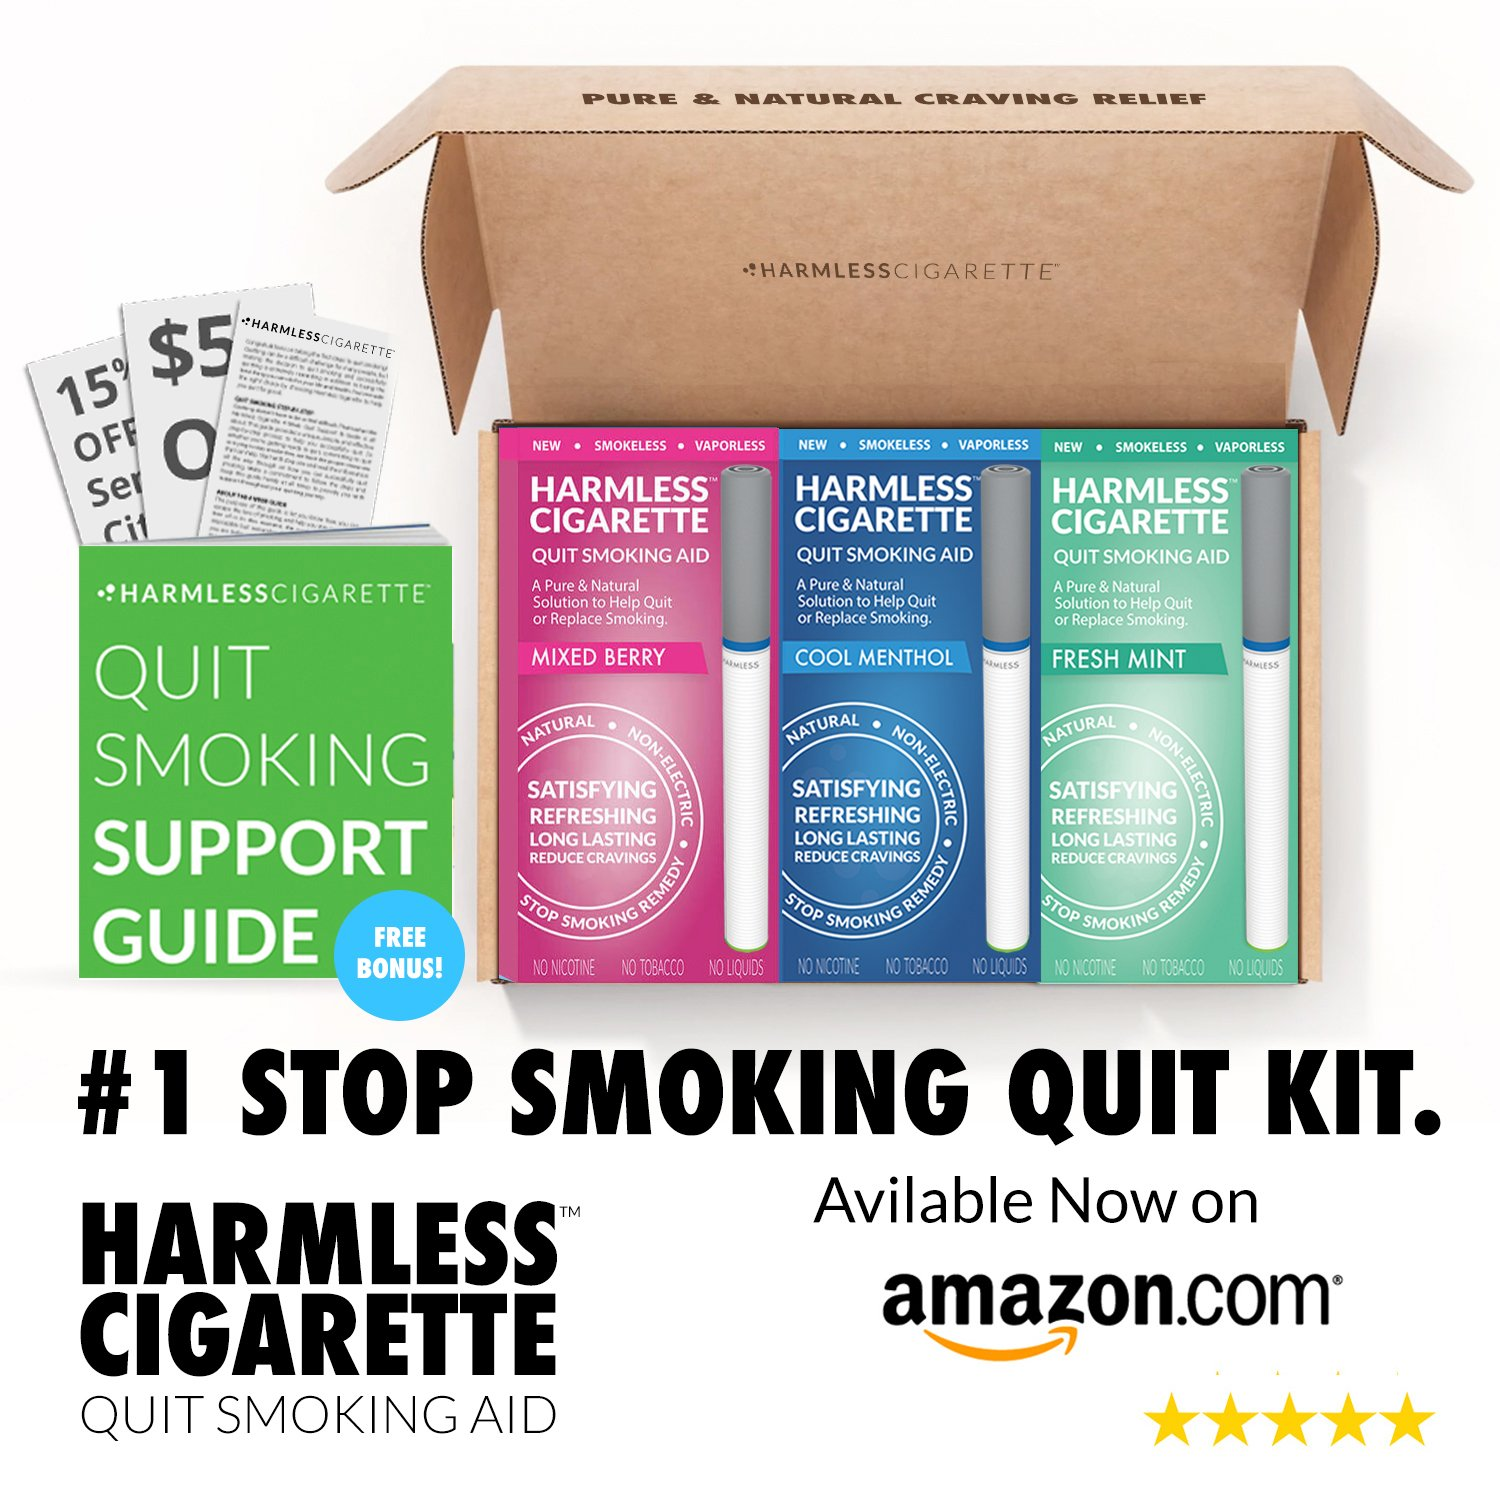 Quit Smoking Aid/Natural Habit Replacement/Stop Smoking Remedy To Help You Quit Smoking Fast & Easy. Now Better Than Nicotine Patches, Nicotine Gum & Lozenges (Best Value, 3 Pack Quit Kit)